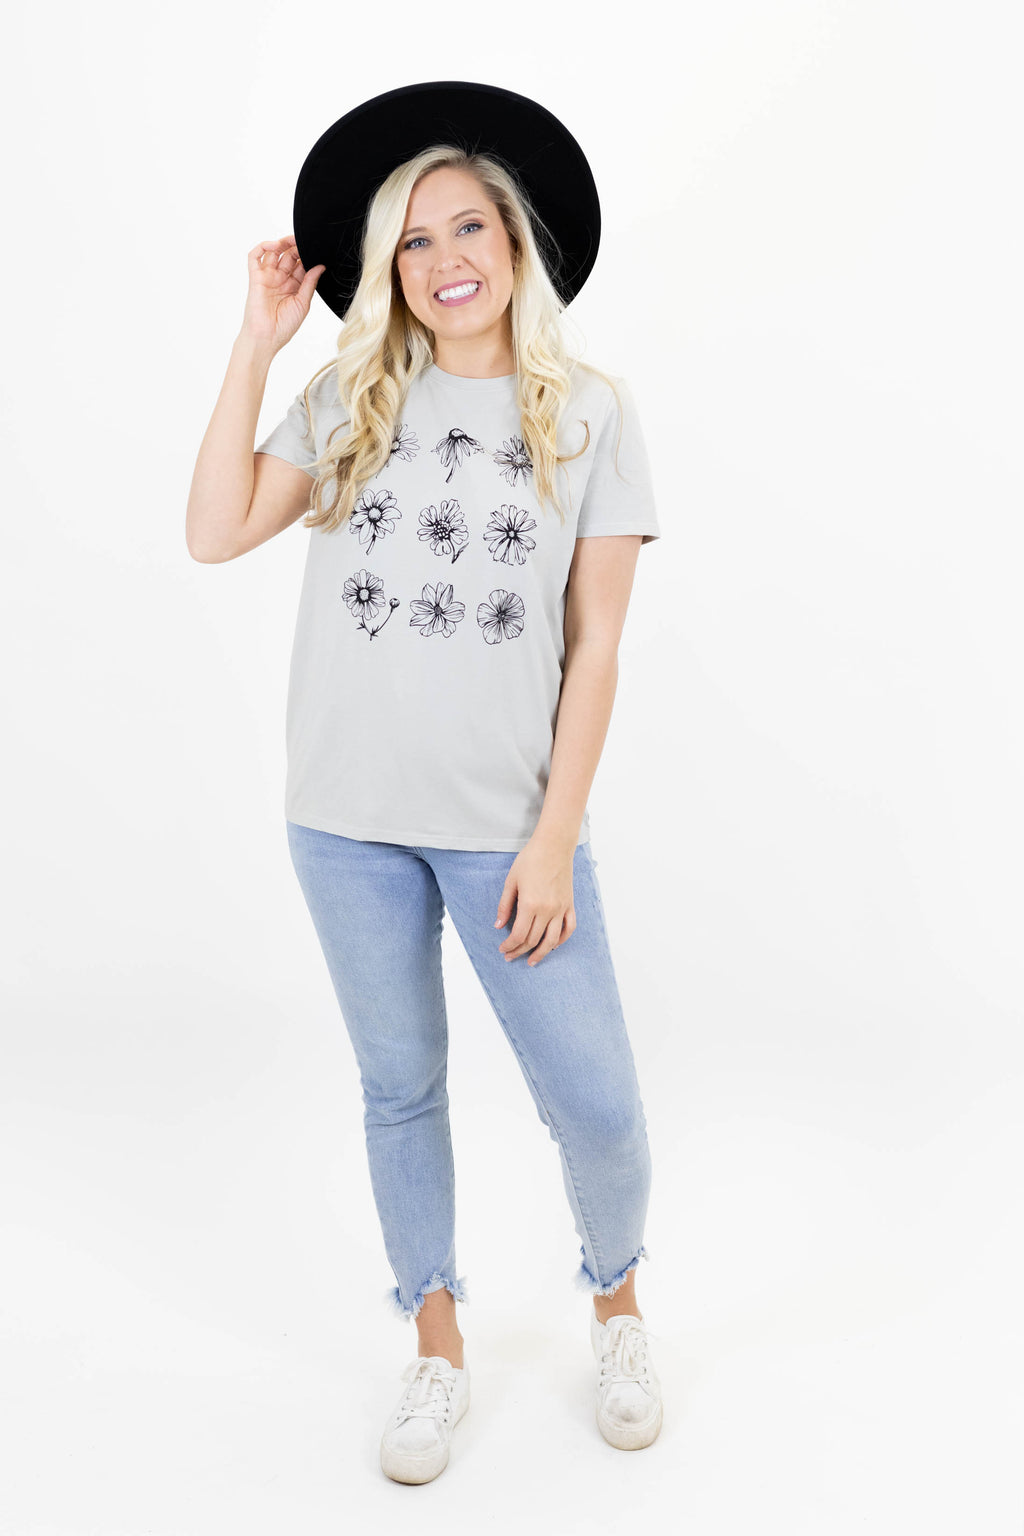 Silver Short Sleeve Tee with Stenciled Flowers on the Front